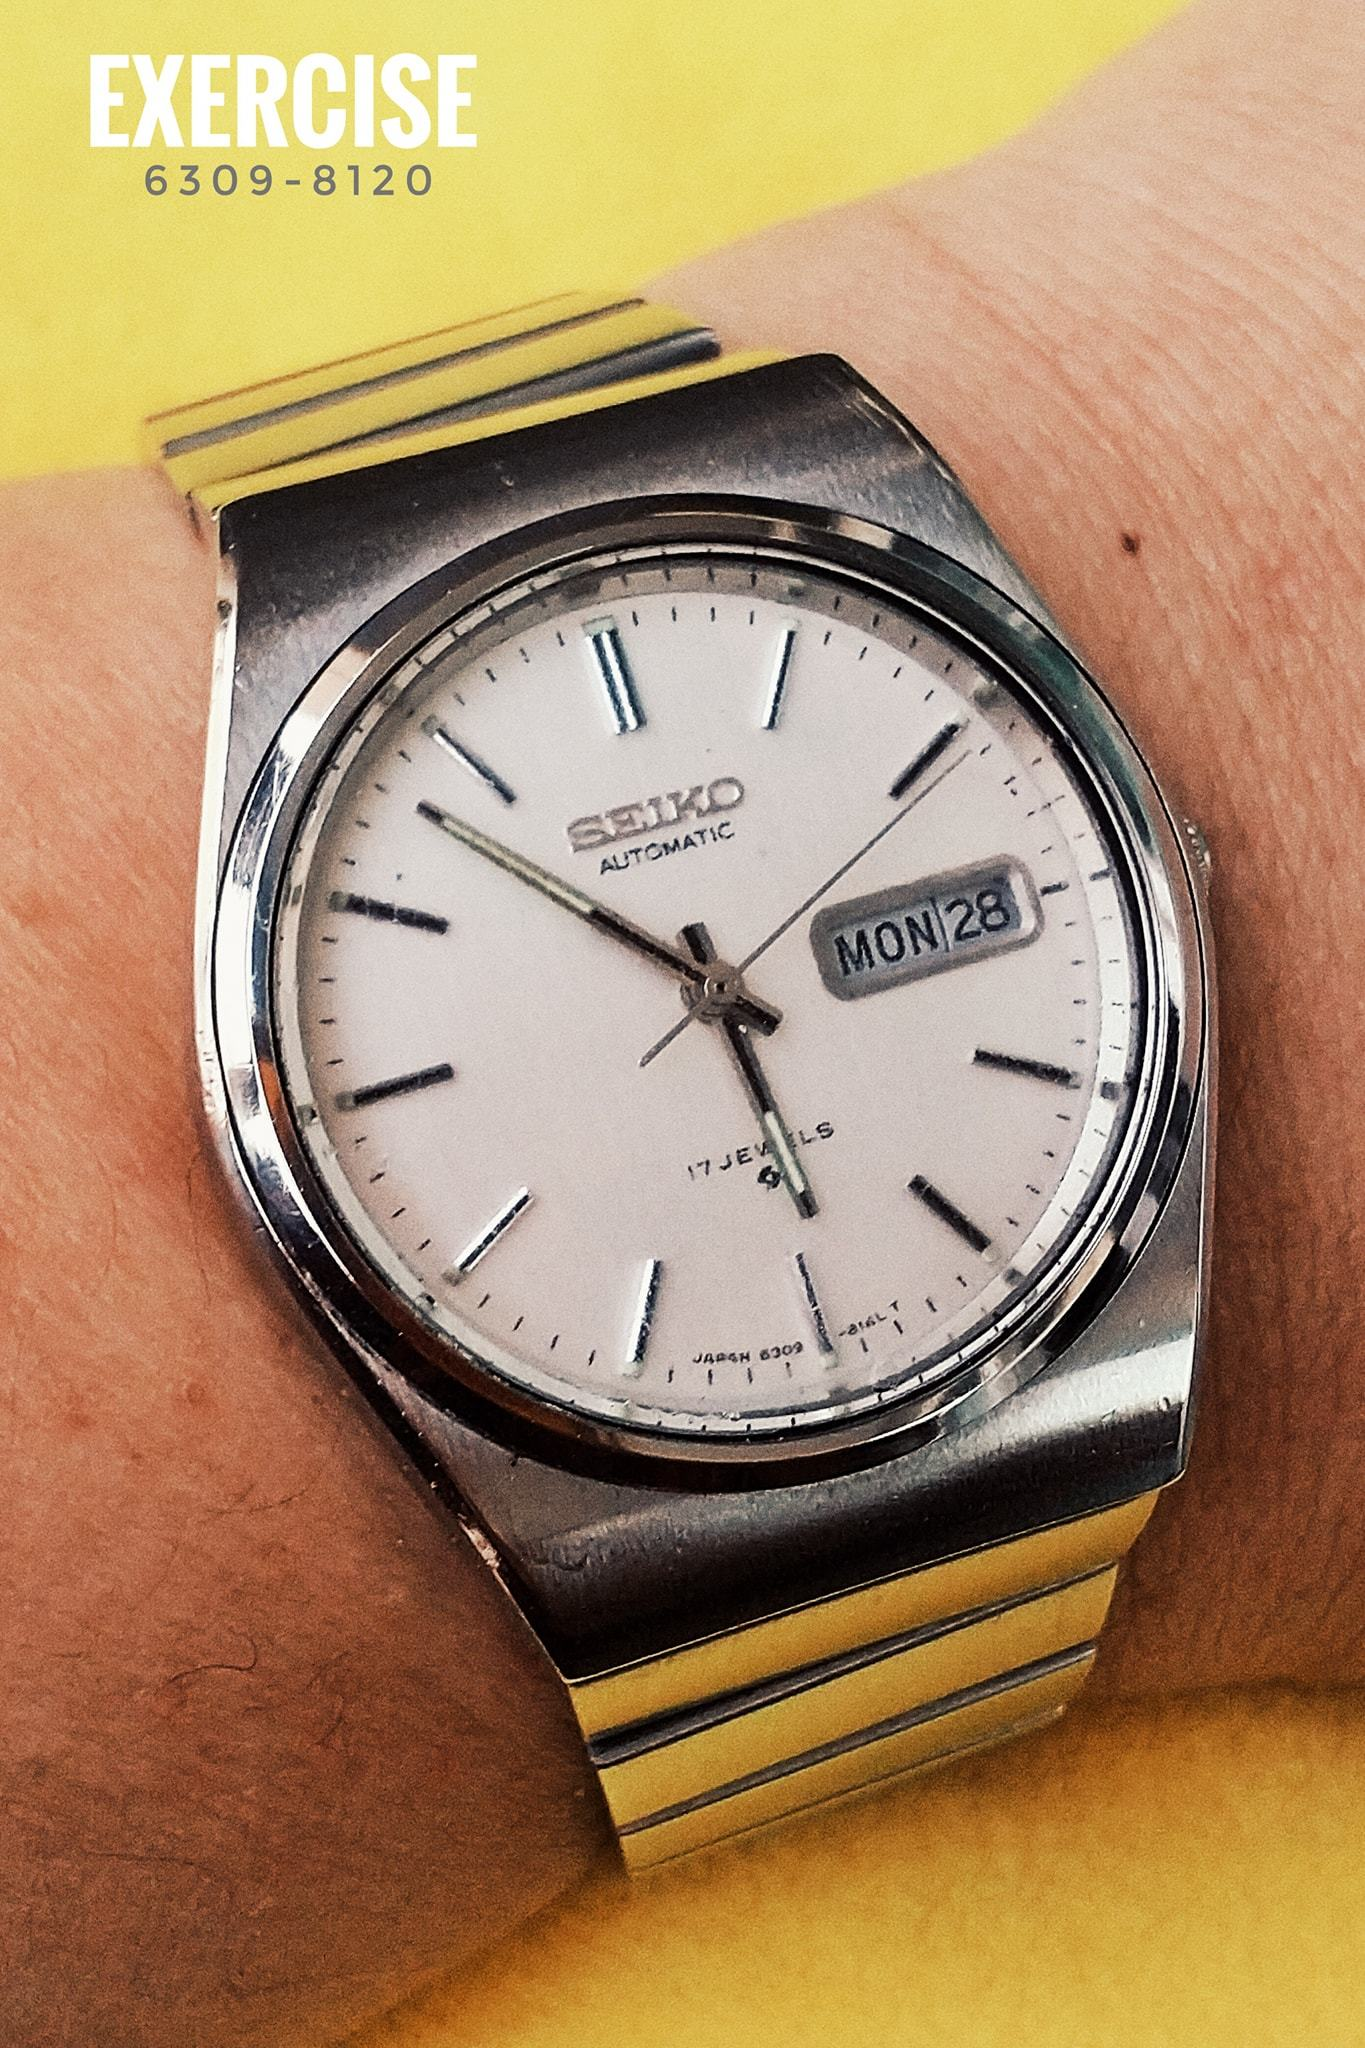 74e8fe0dad3c Seiko Archives - Page 4 of 9 - Coolest Vintage